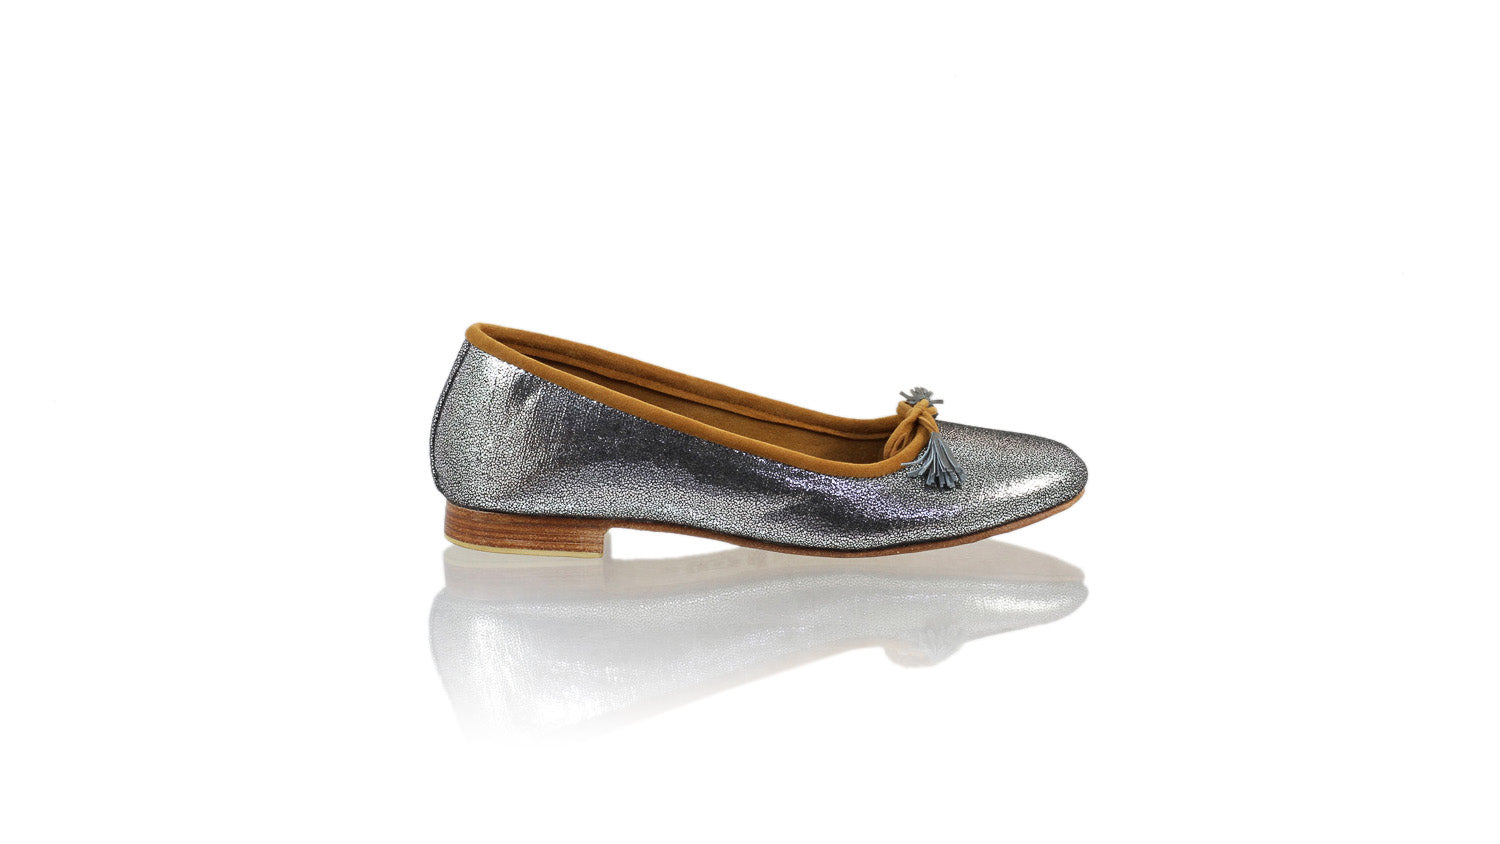 Leather-shoes-Noemi 20mm ballet - Silver Cracking Faux Leather-flats ballet-NILUH DJELANTIK-NILUH DJELANTIK